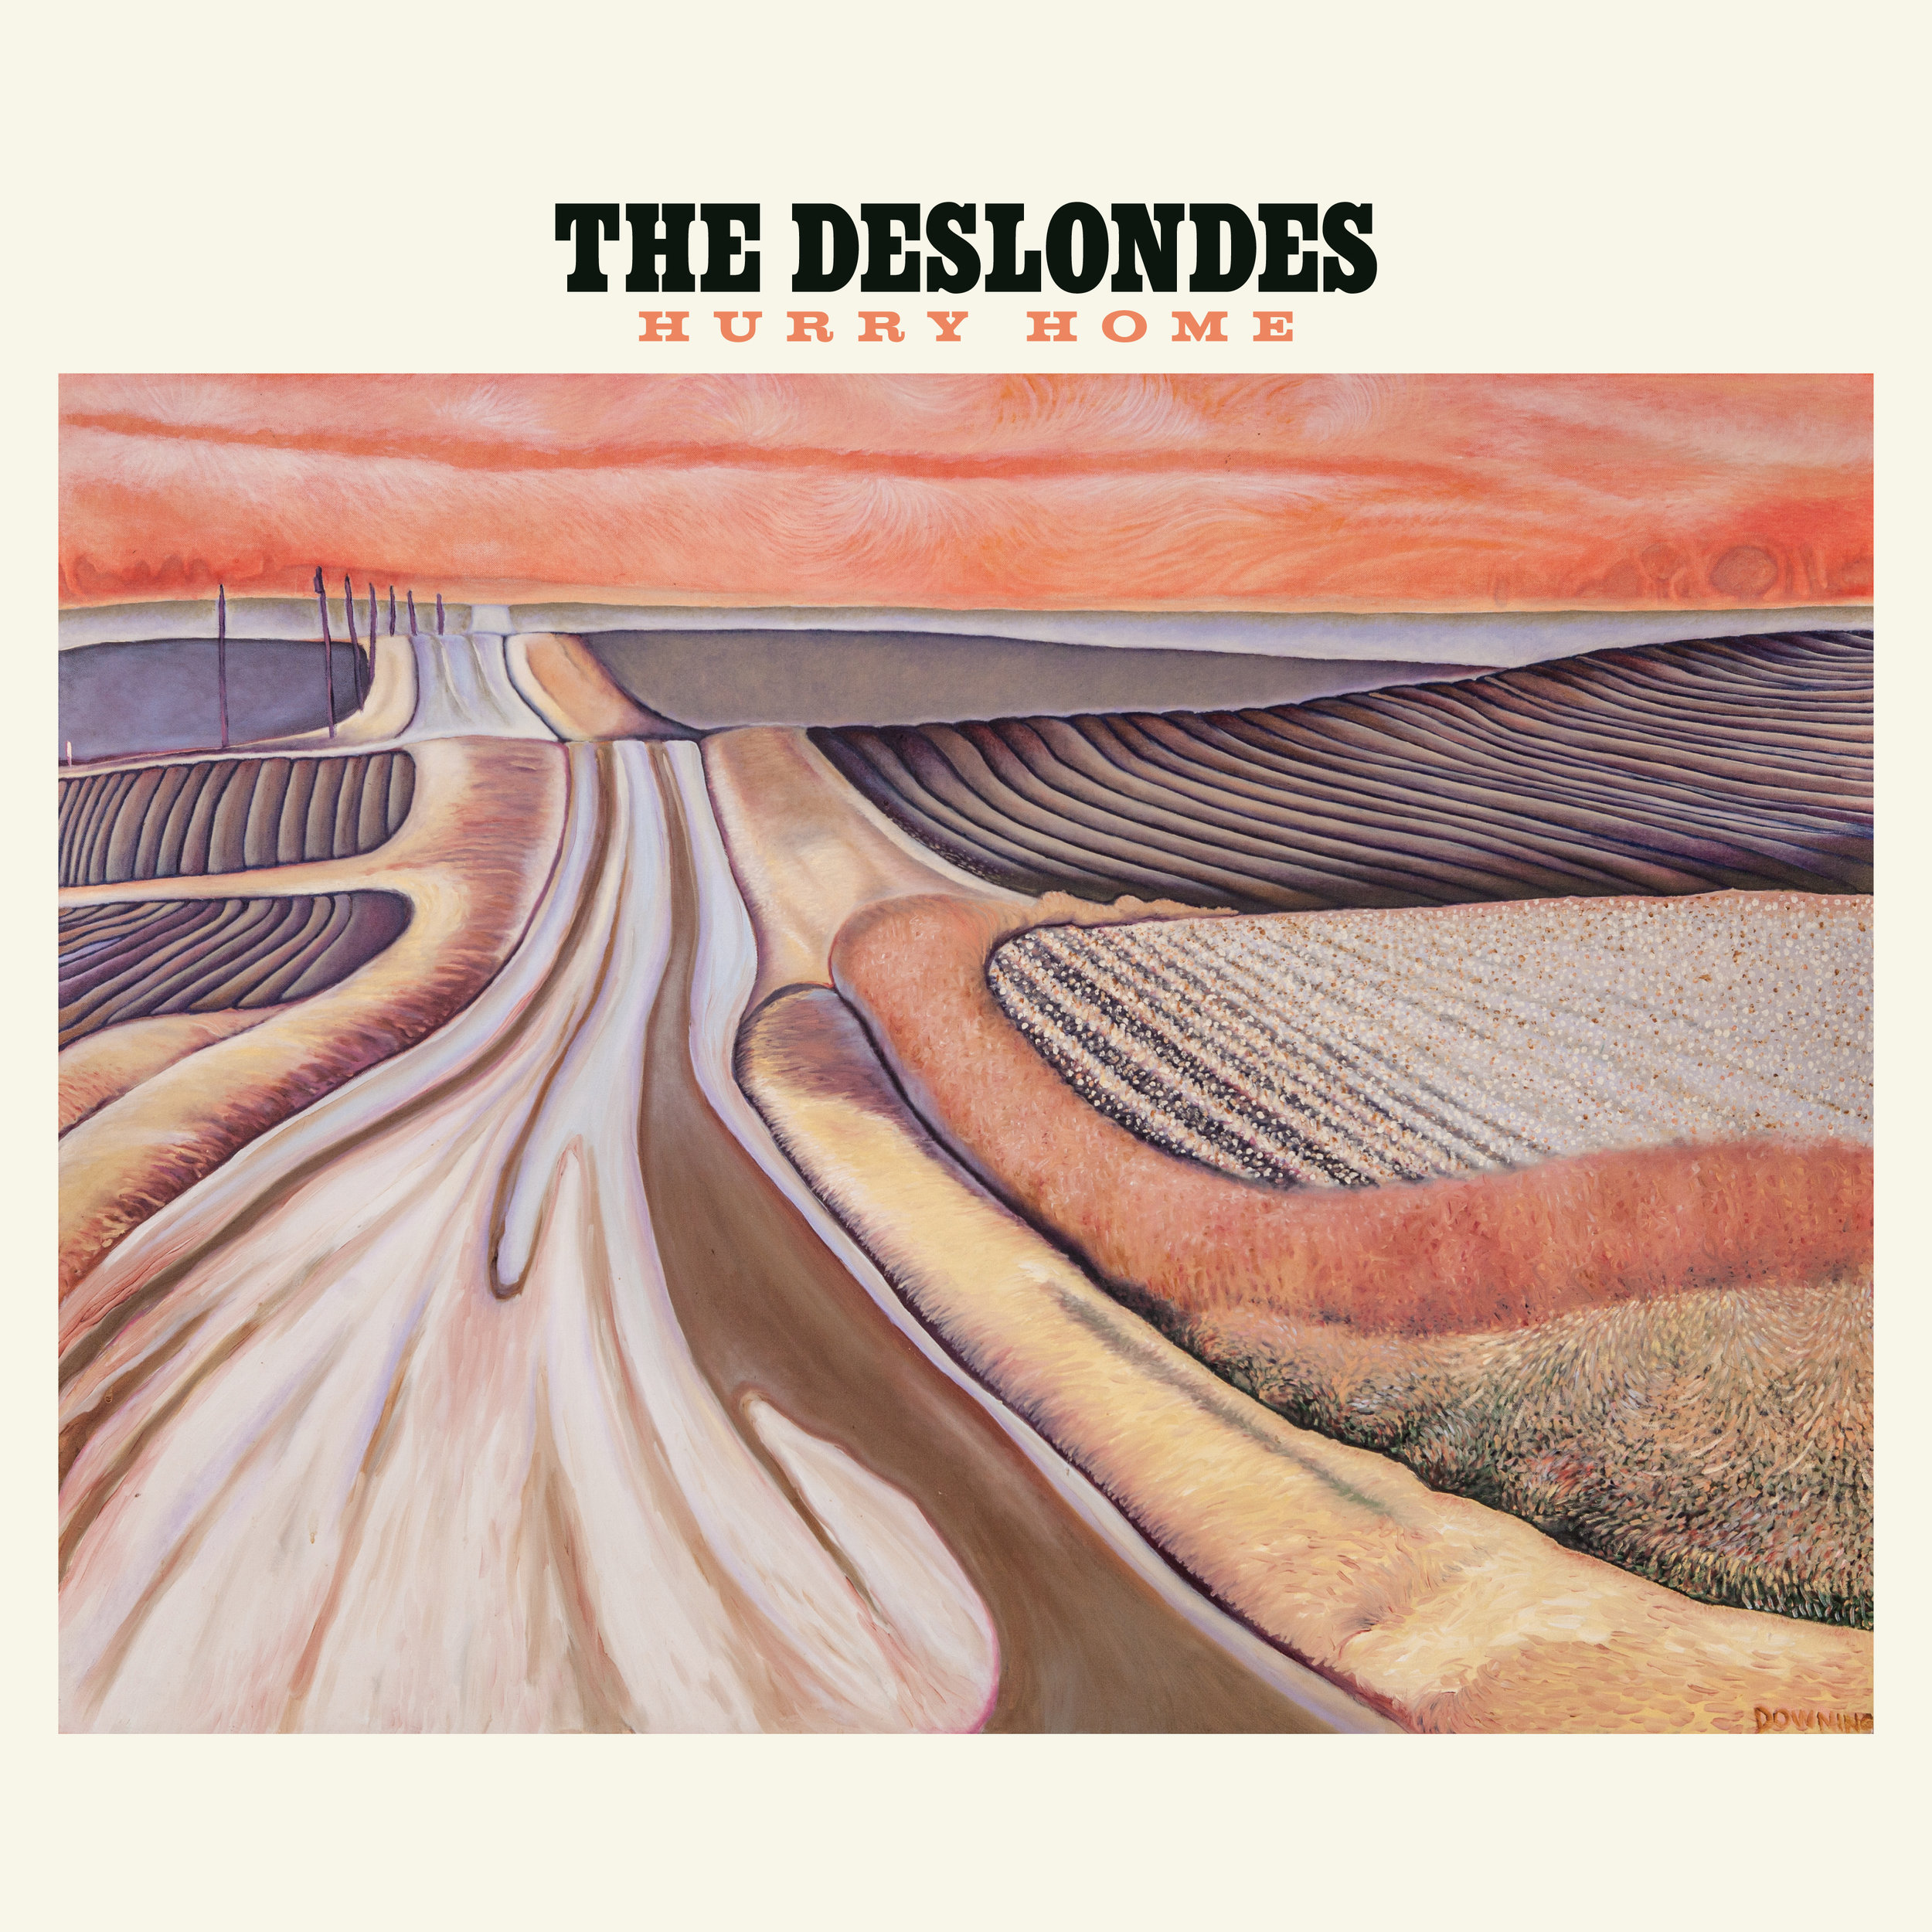 Deslondes.The-HurryHome_3600x3600 art.jpg